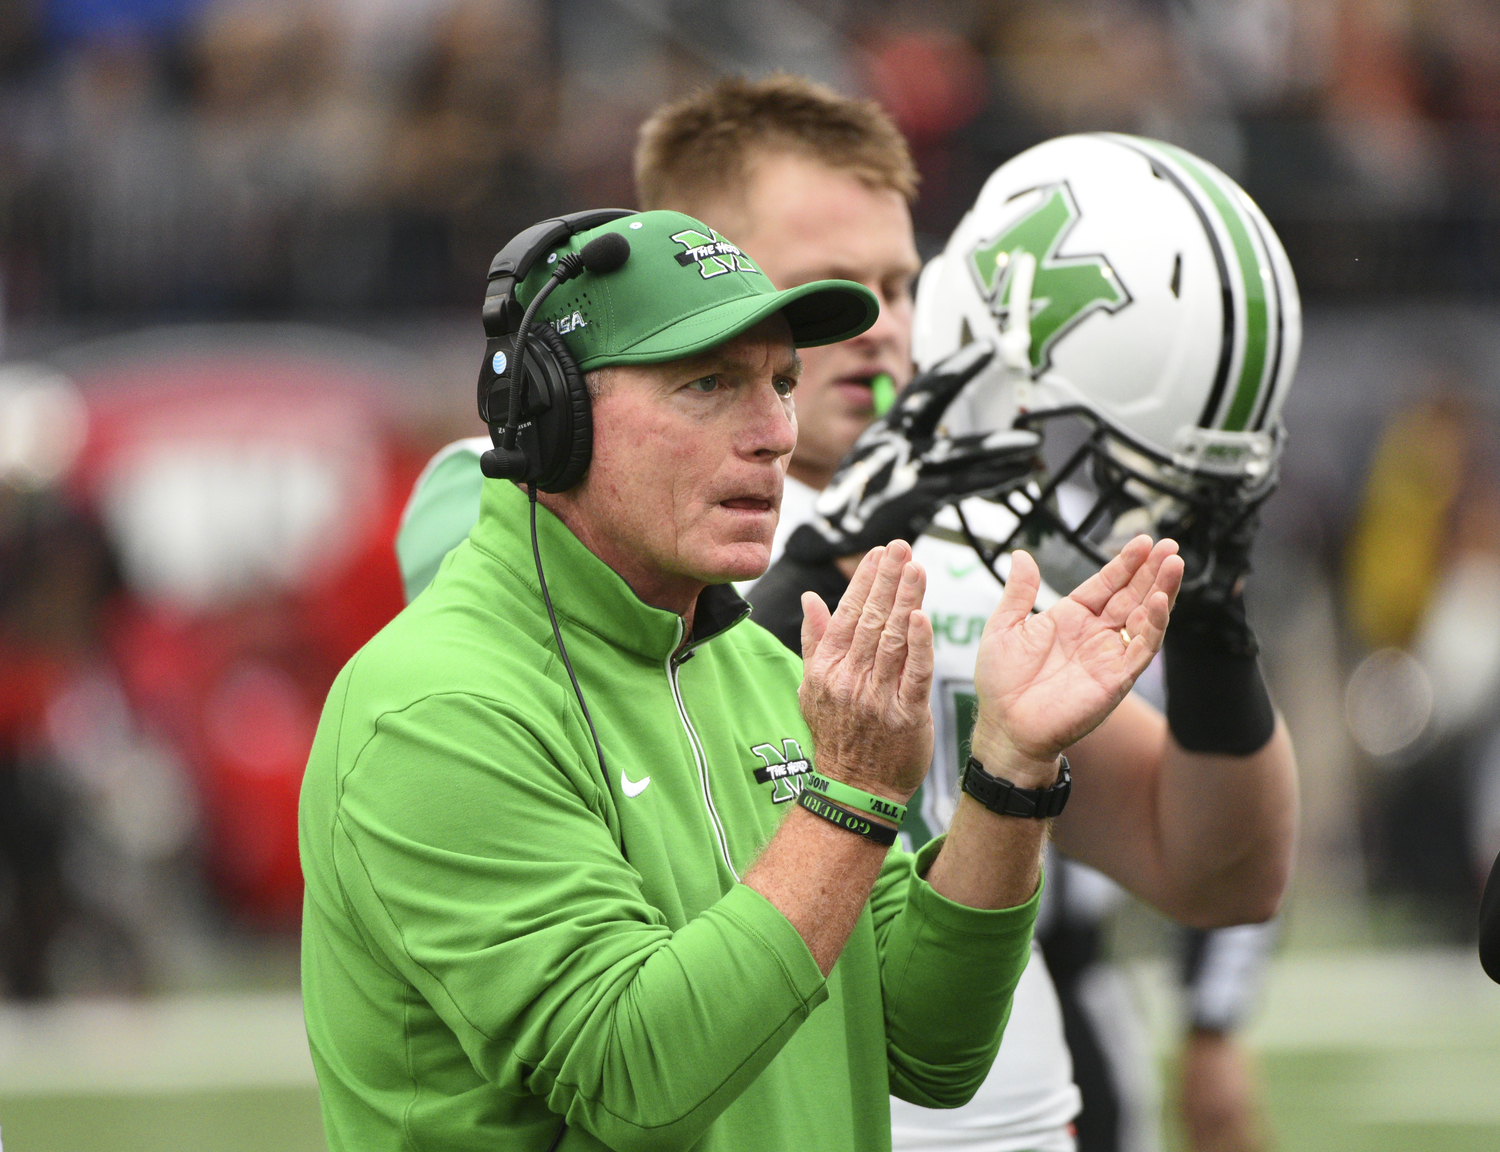 Marshall's Doc Holiday claps for his players during the first half of an NCAA college football game against Western Kentucky on Friday, Nov. 27, 2015, at L.T. Smith Stadium in Bowling Green, Ky. (Michael Noble Jr./AP)